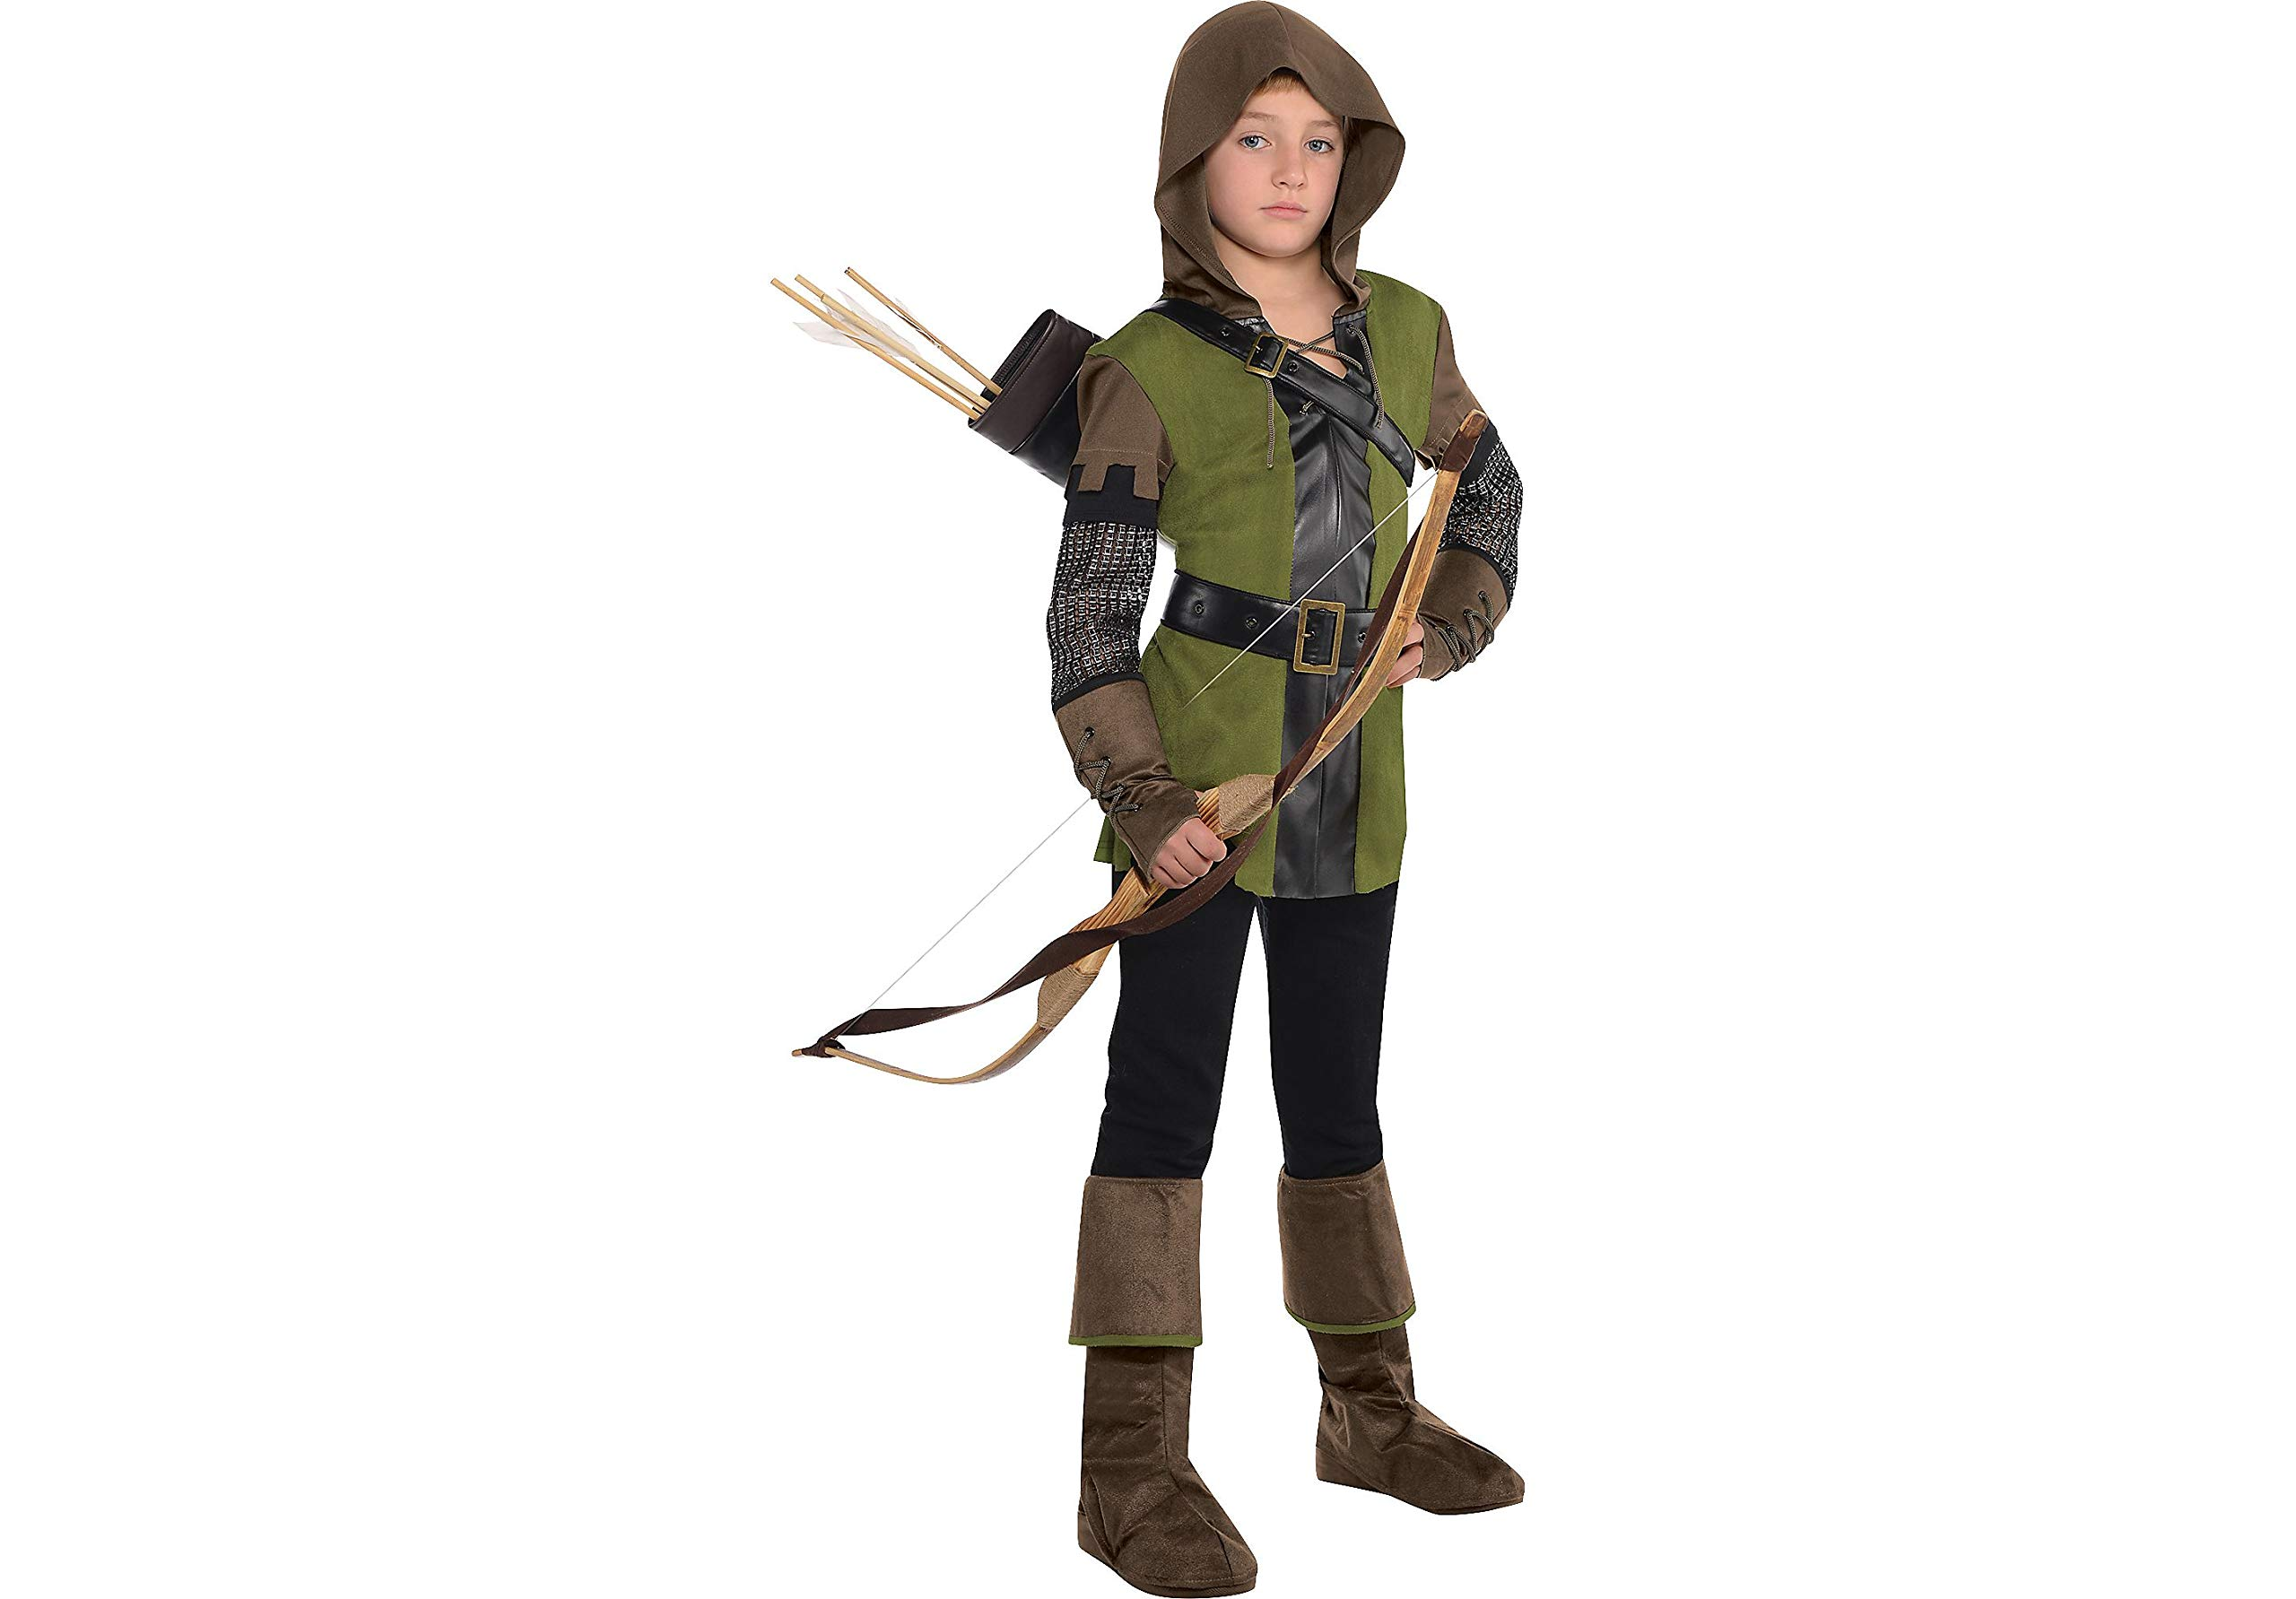 AMSCAN Prince of Thieves Robin Hood Halloween Costume for Boys, Medium, with Included Accessories by Amscan (Image #1)